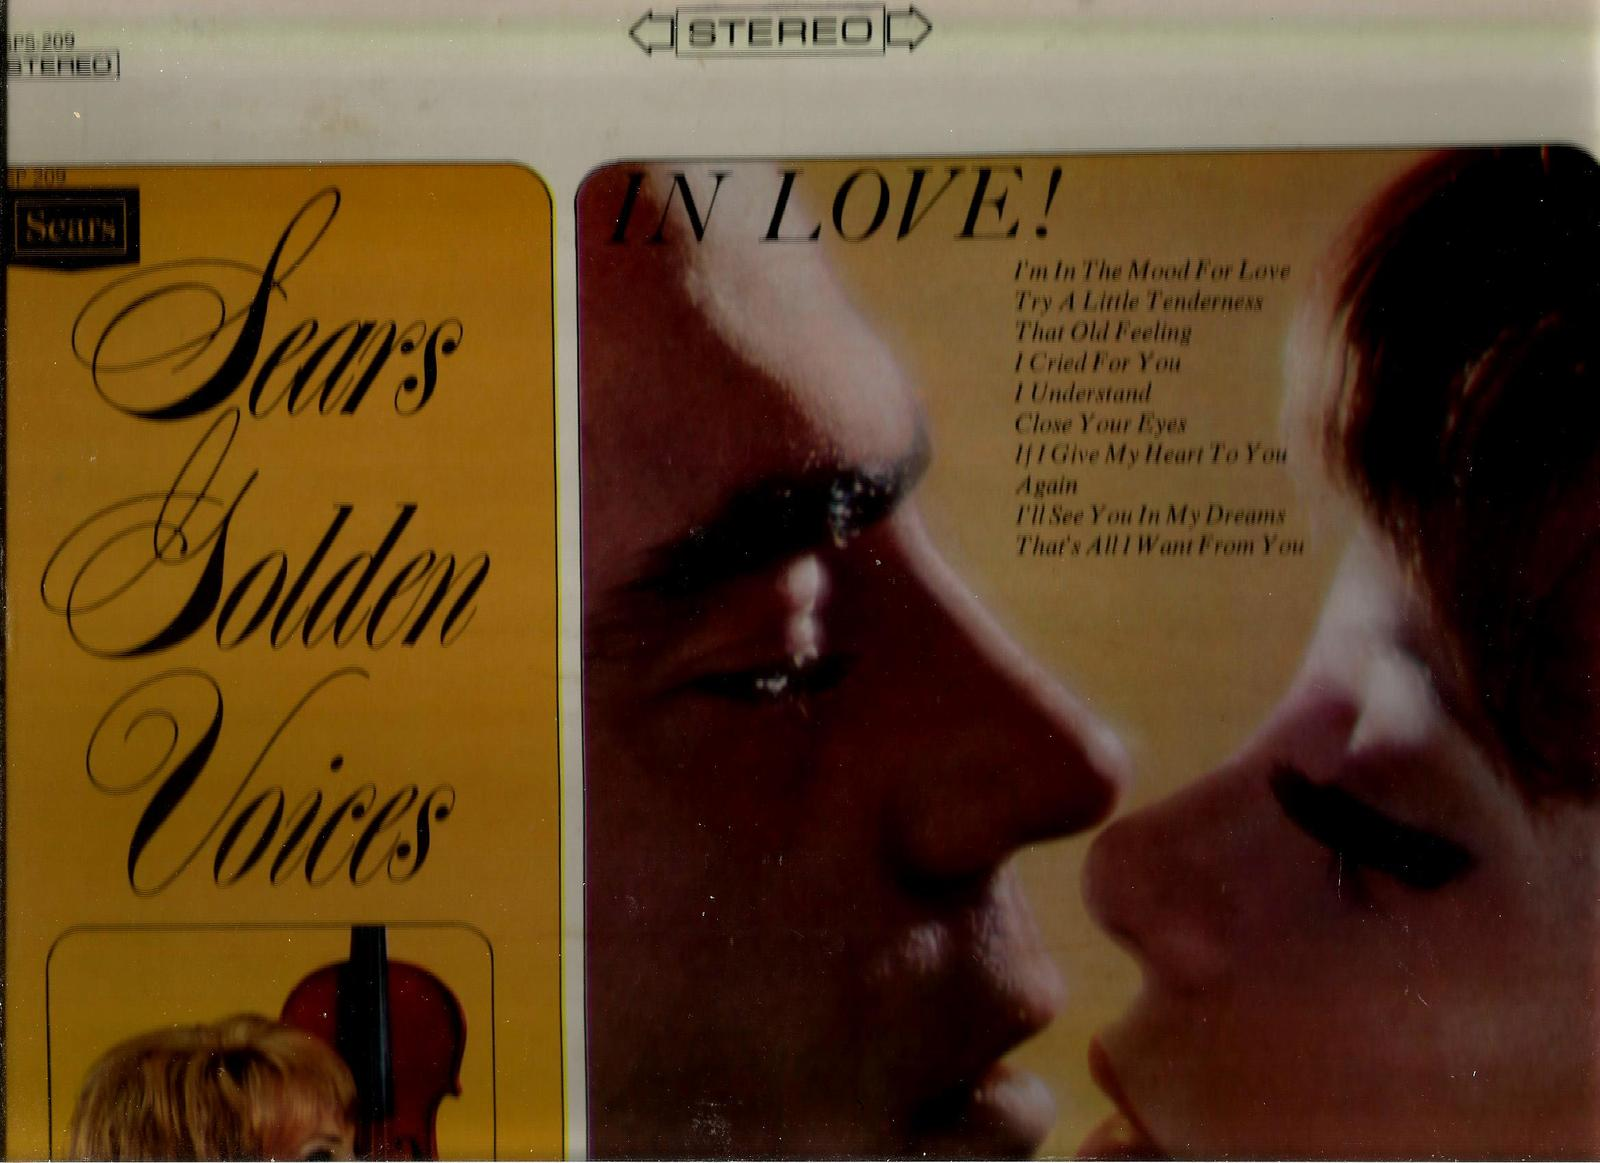 SEARS GOLDEN VOICES  *  IN LOVE  * THE GOLDEN VOICES CHOIR  ~  LP  STEREO